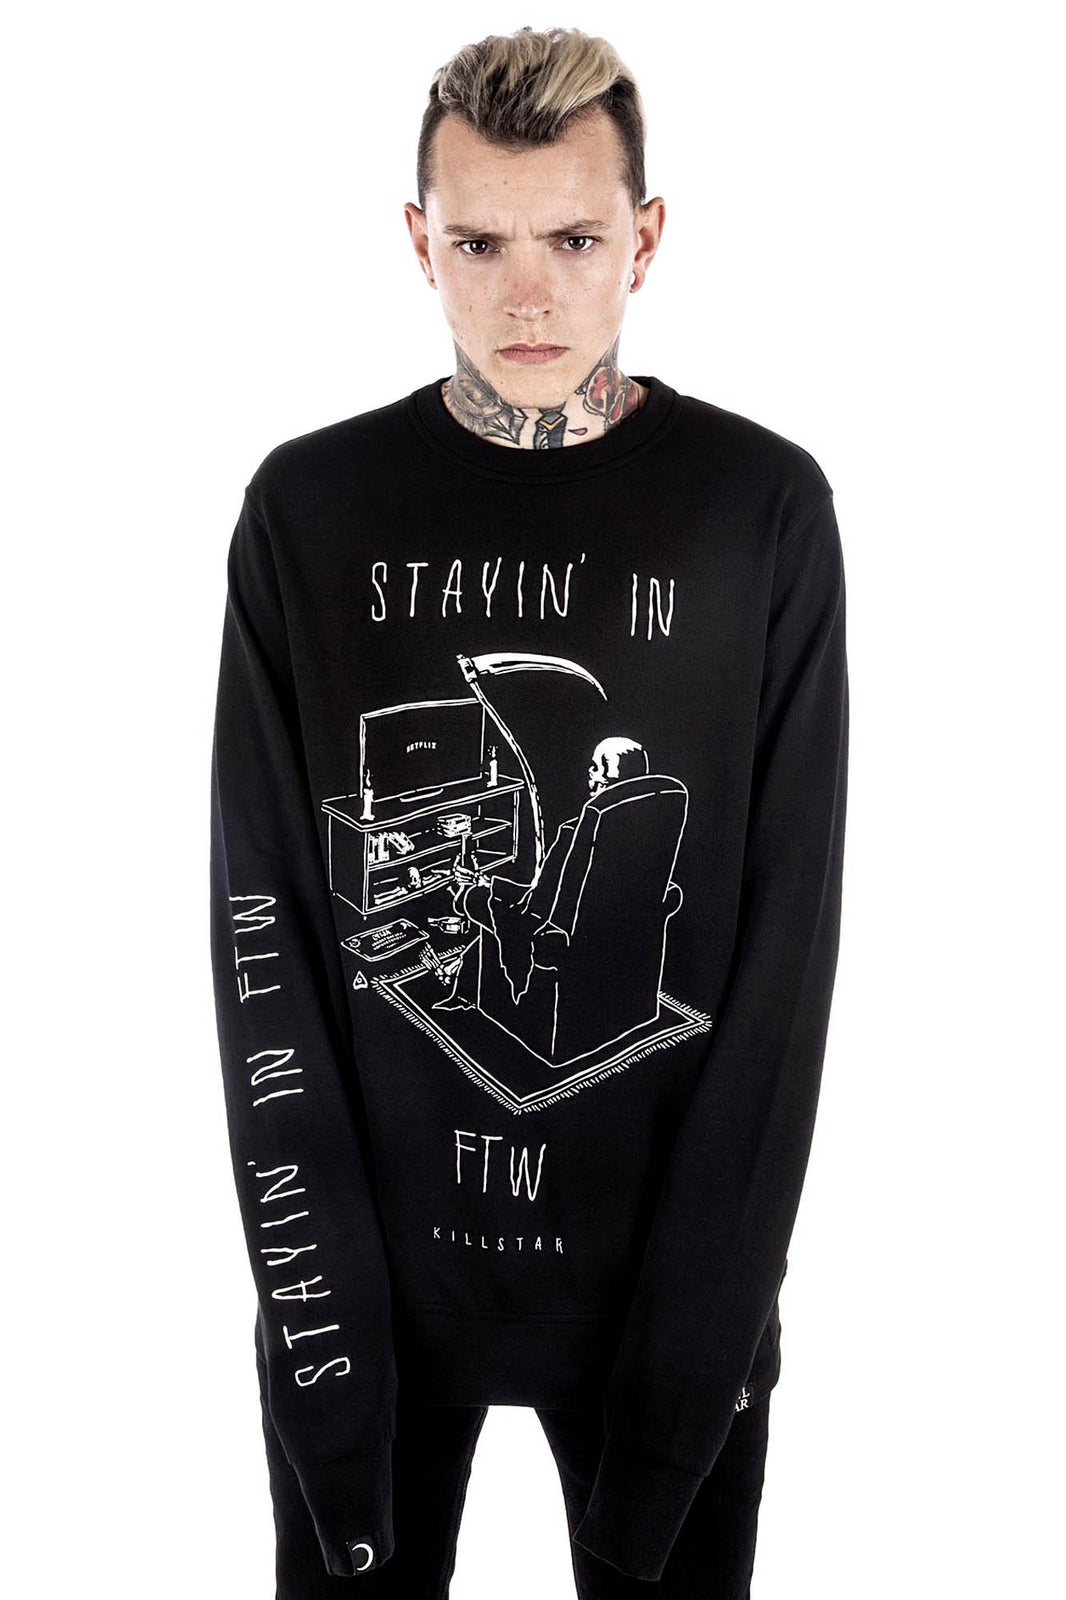 Stayin' In Sweatshirt [B]